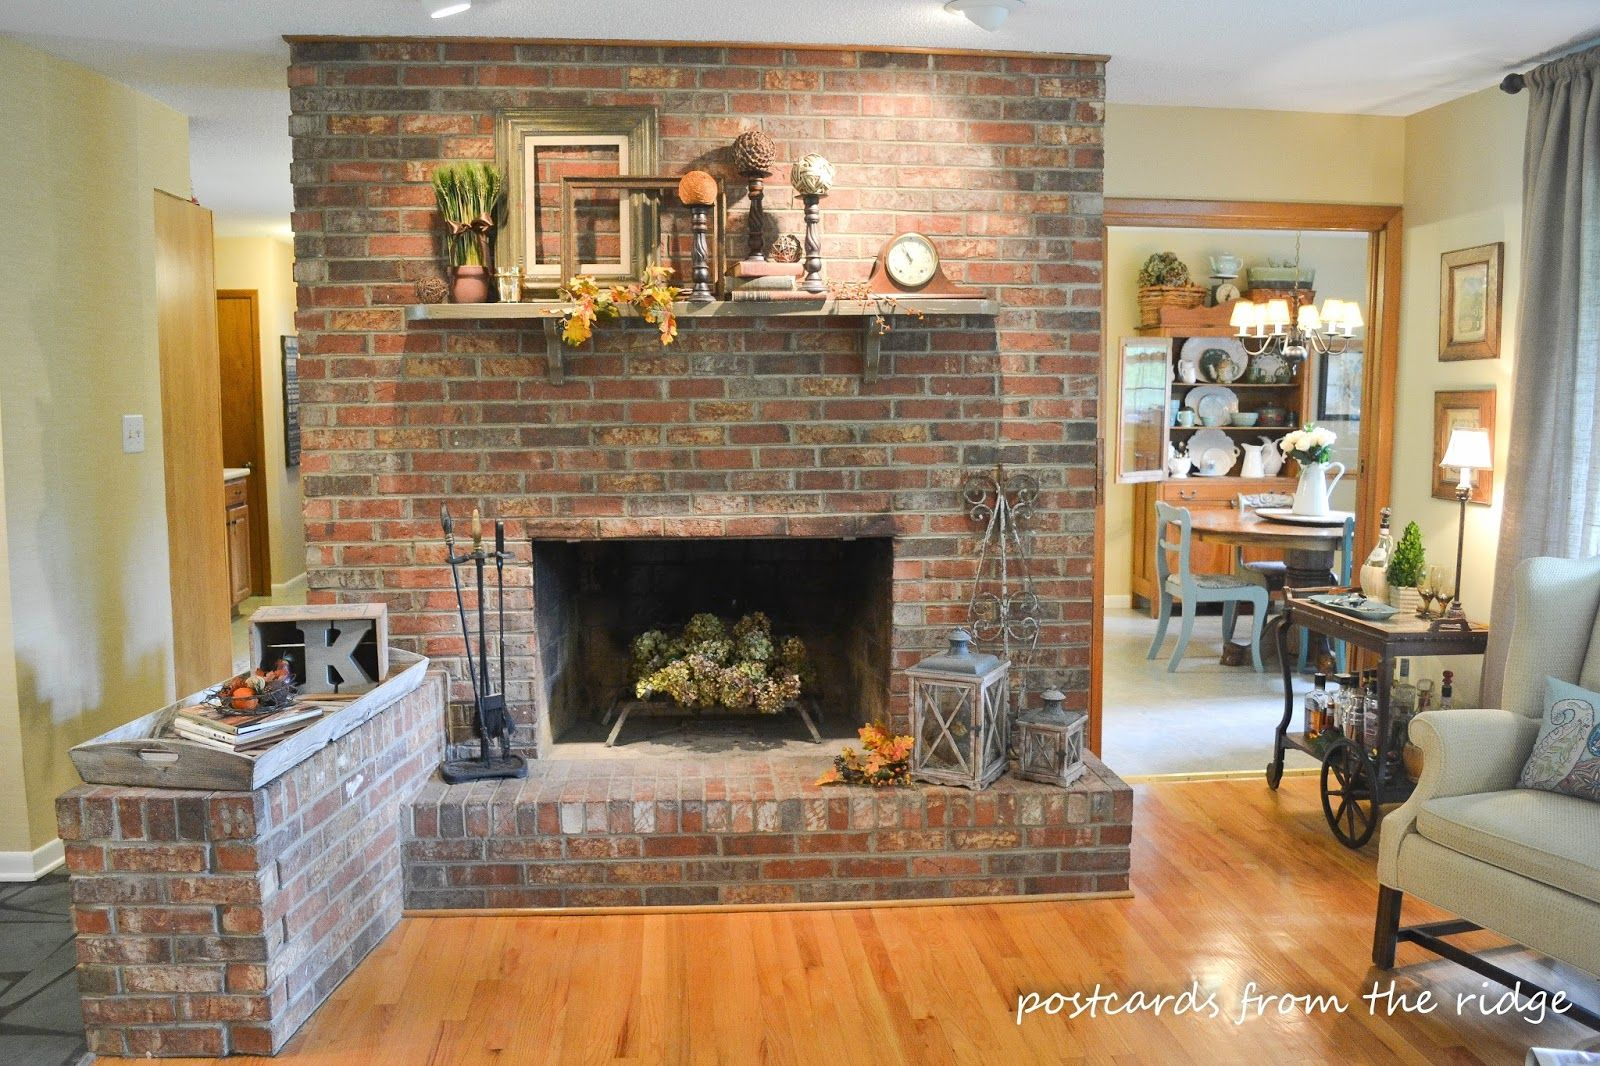 Fireplace Mantel Decorating Ideas Brick Fireplace Mantel Decorating Ideas  Decorating Ideas Good